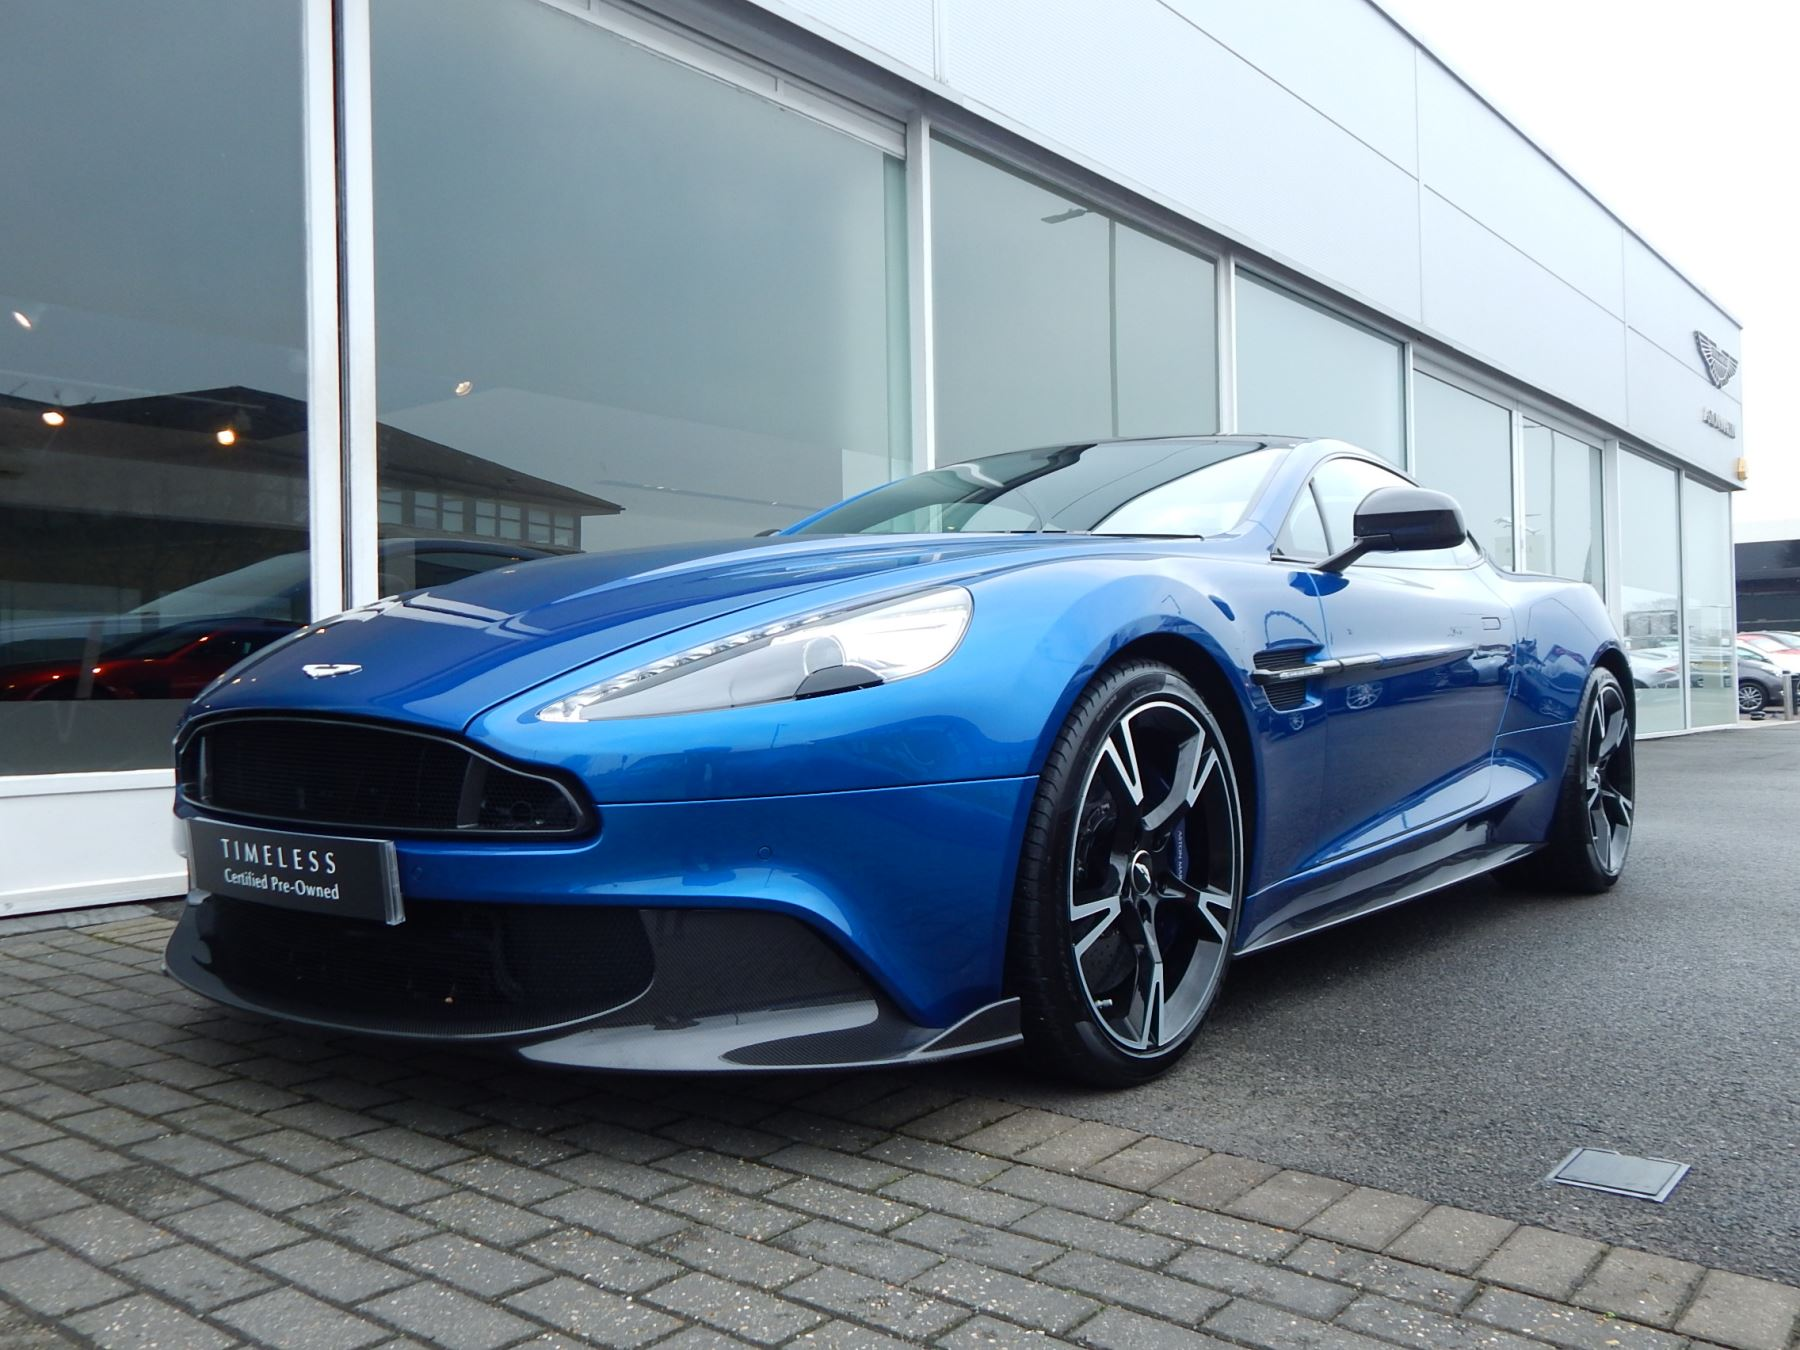 Aston Martin Vanquish V12 [595] S 2+2 2dr Touchtronic image 7